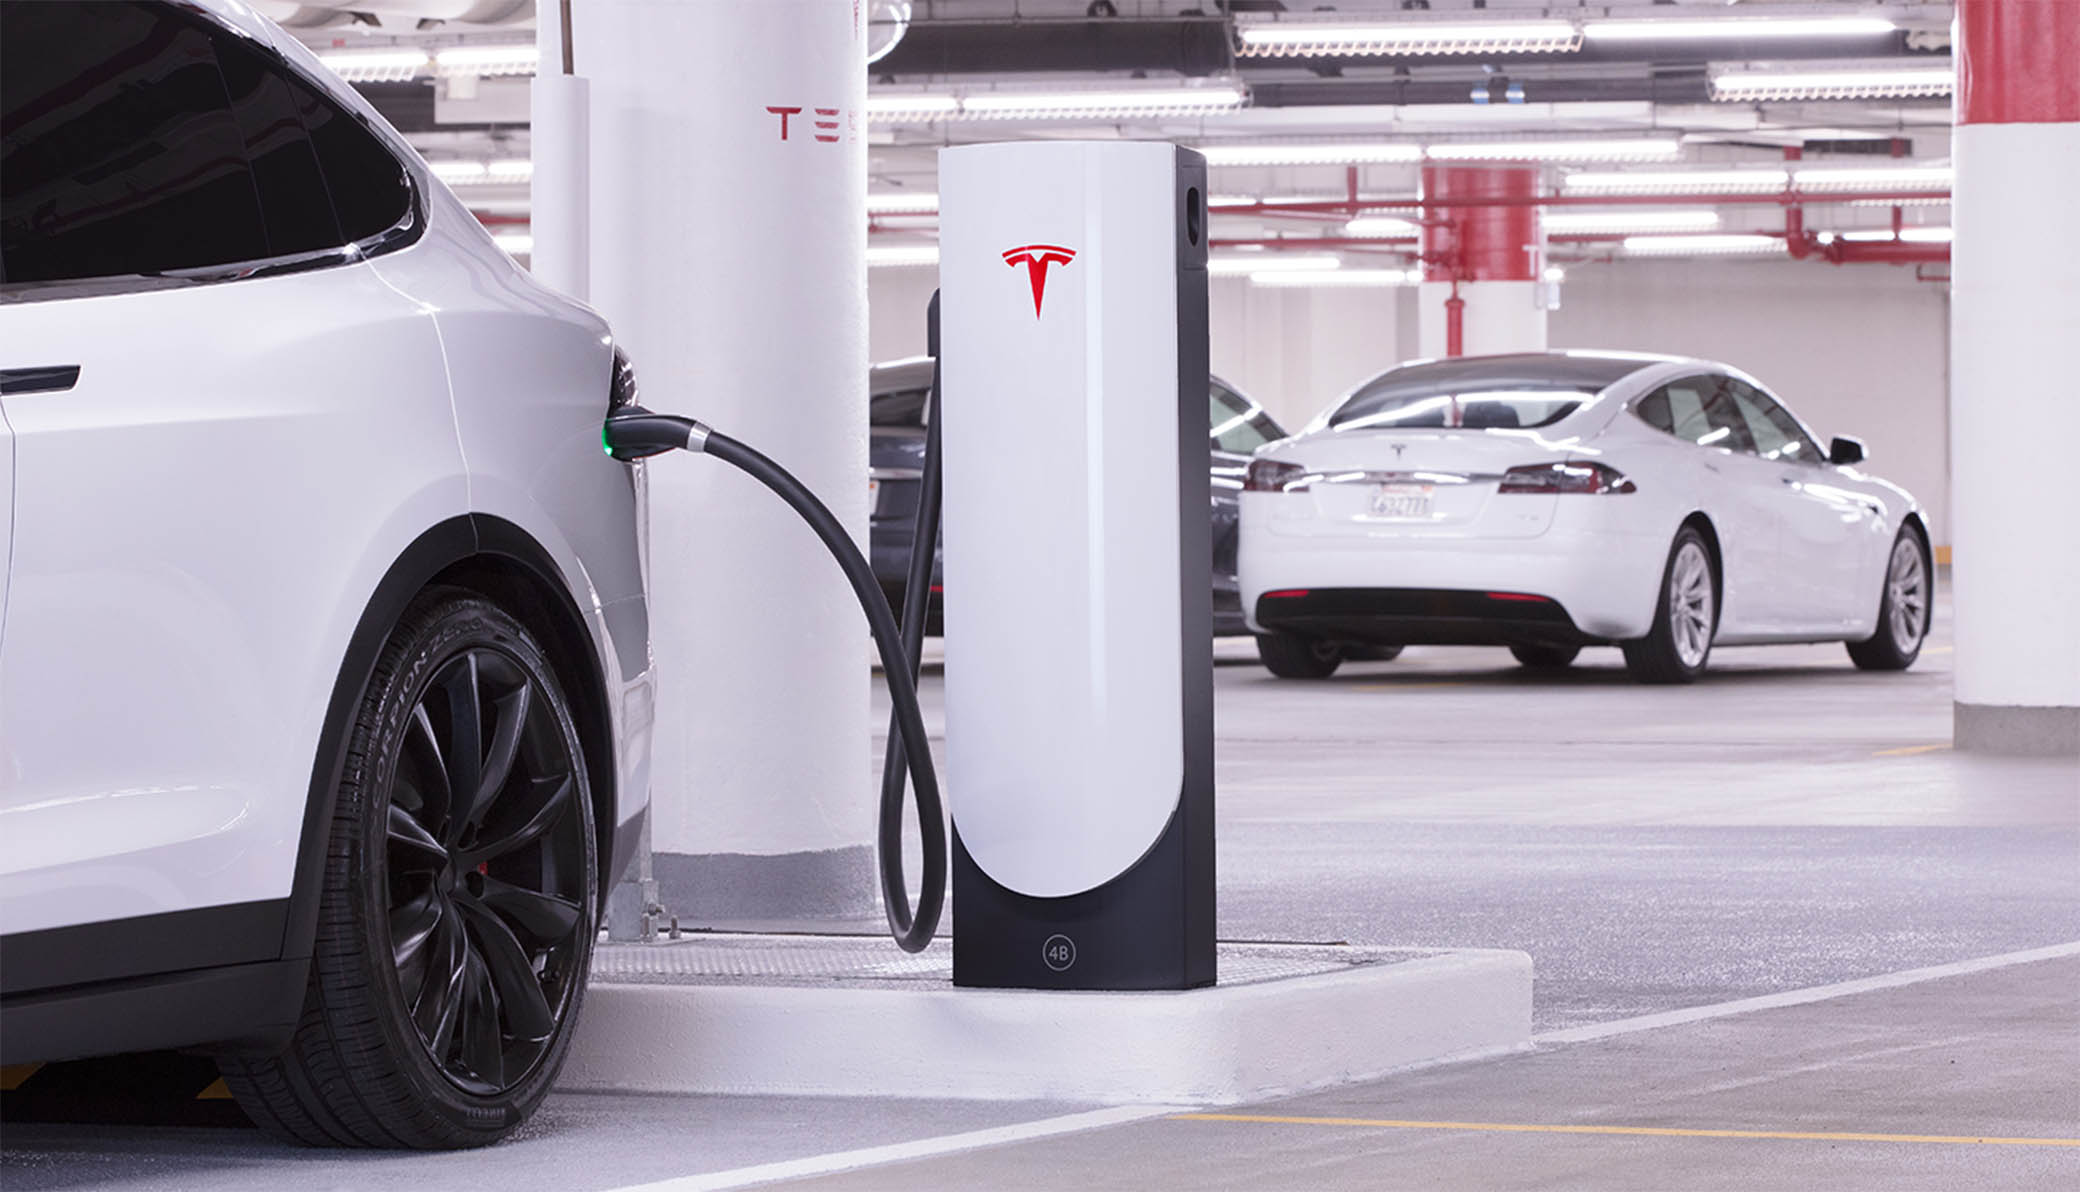 Tesla Supercharger for urban areas